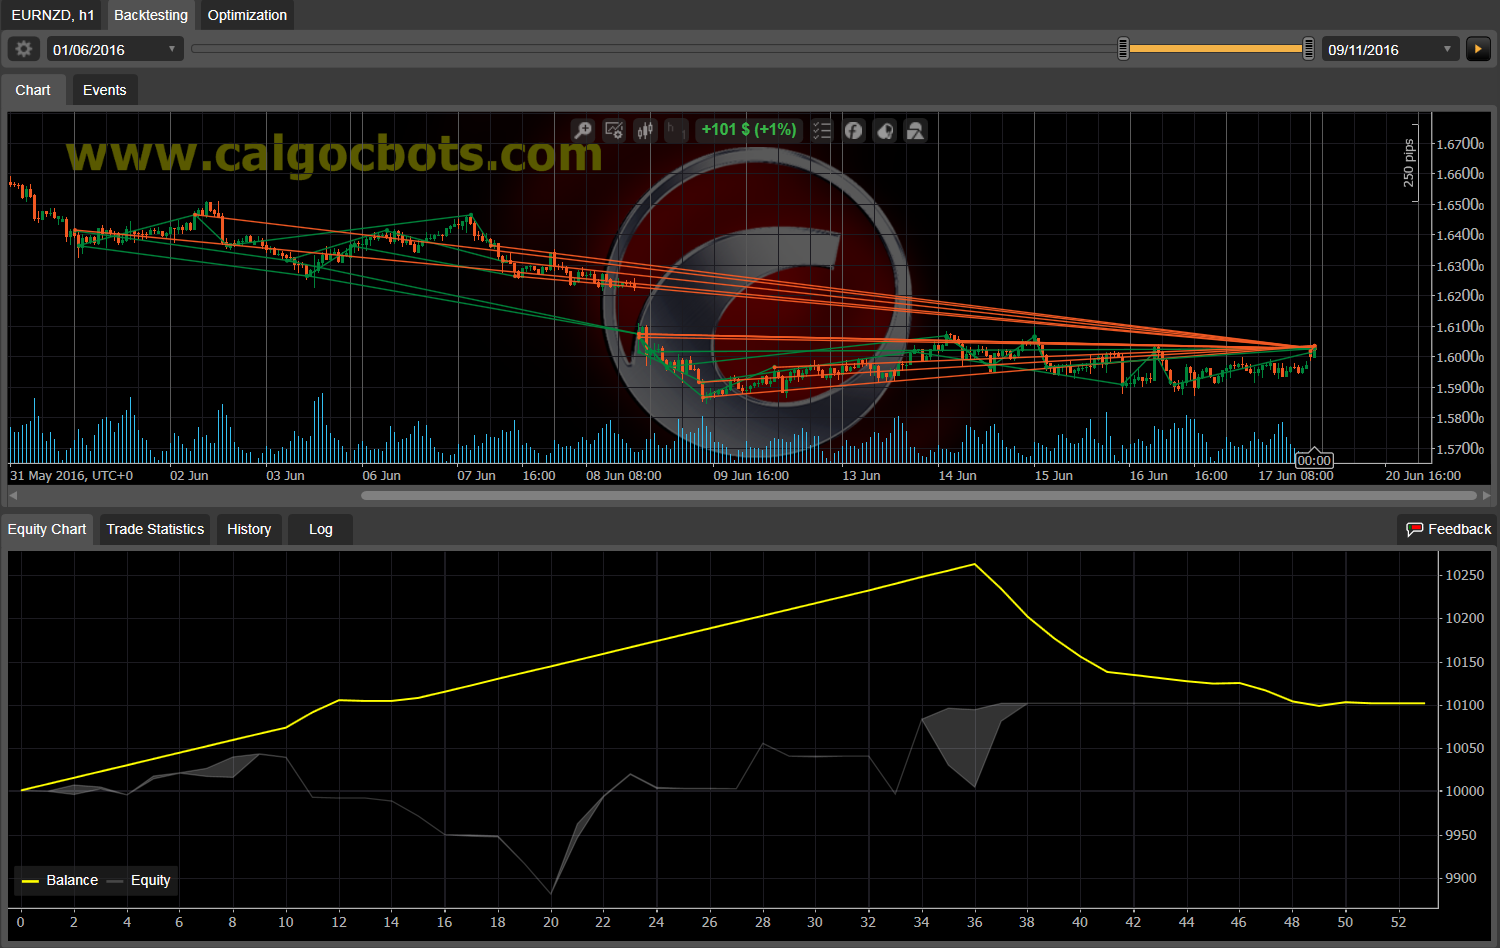 Dual Grid Hedge EUR NZD 1h cAlgo cBots cTrader 100 50 100 - 11 a